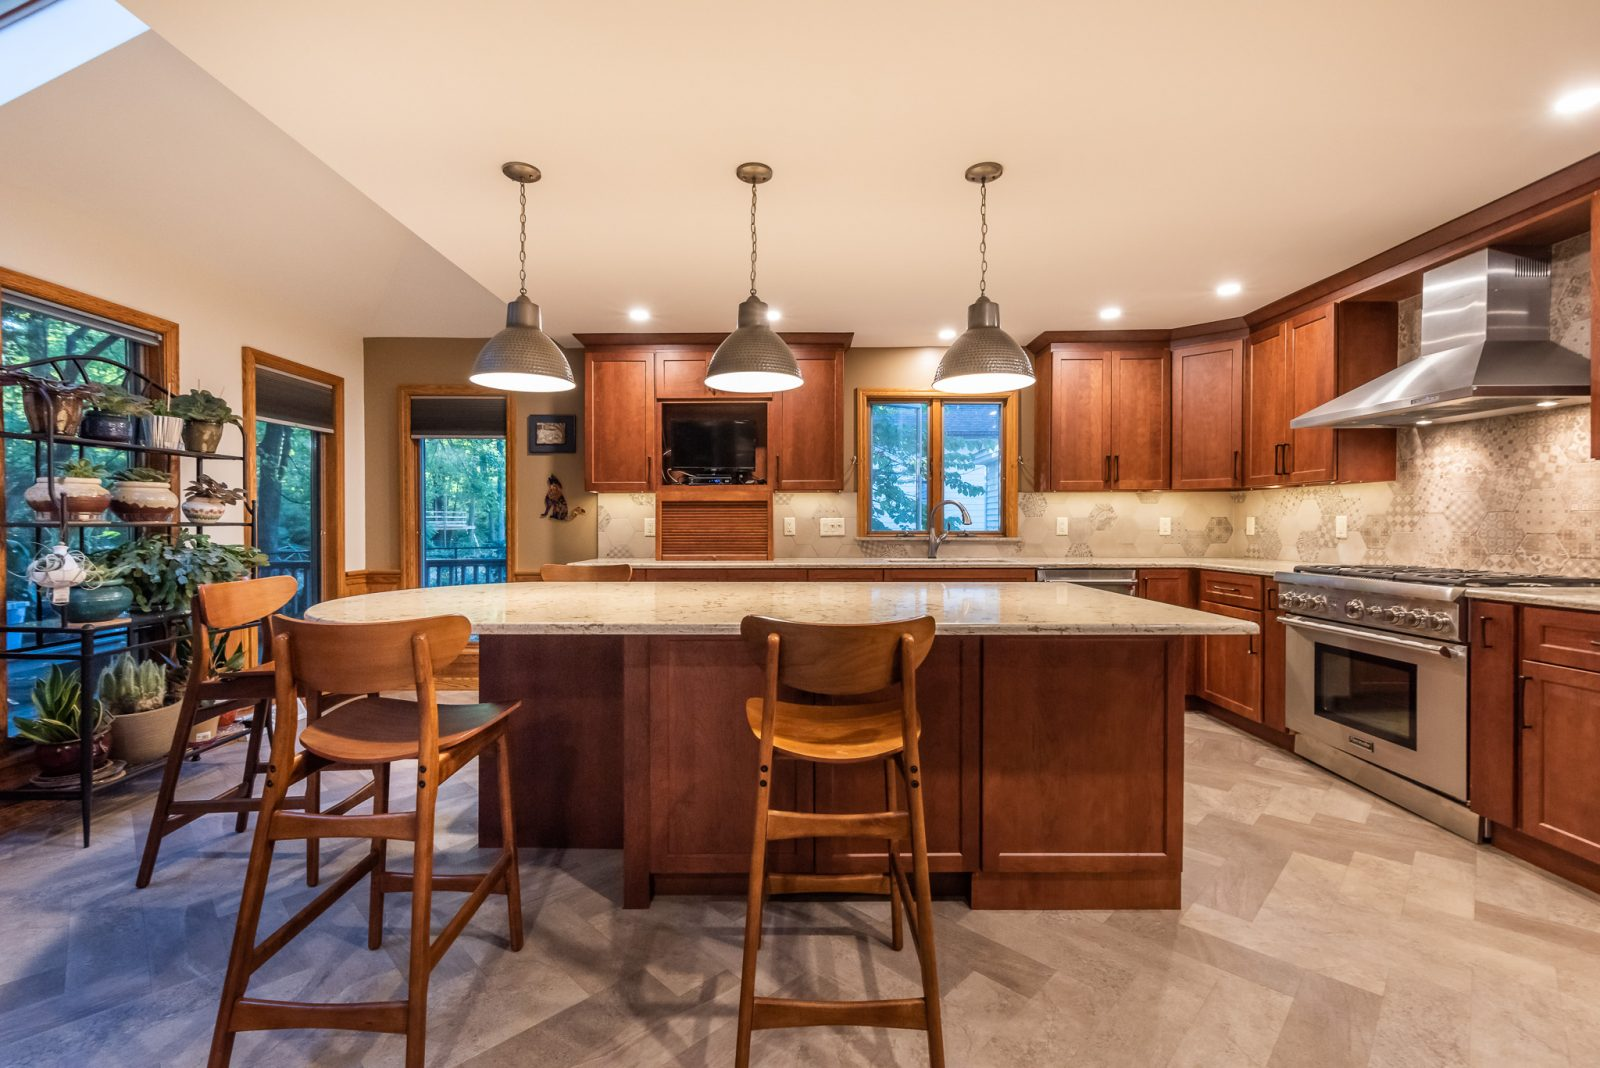 The #1 Reason People Remodel Their Kitchen | Bennett Contracting